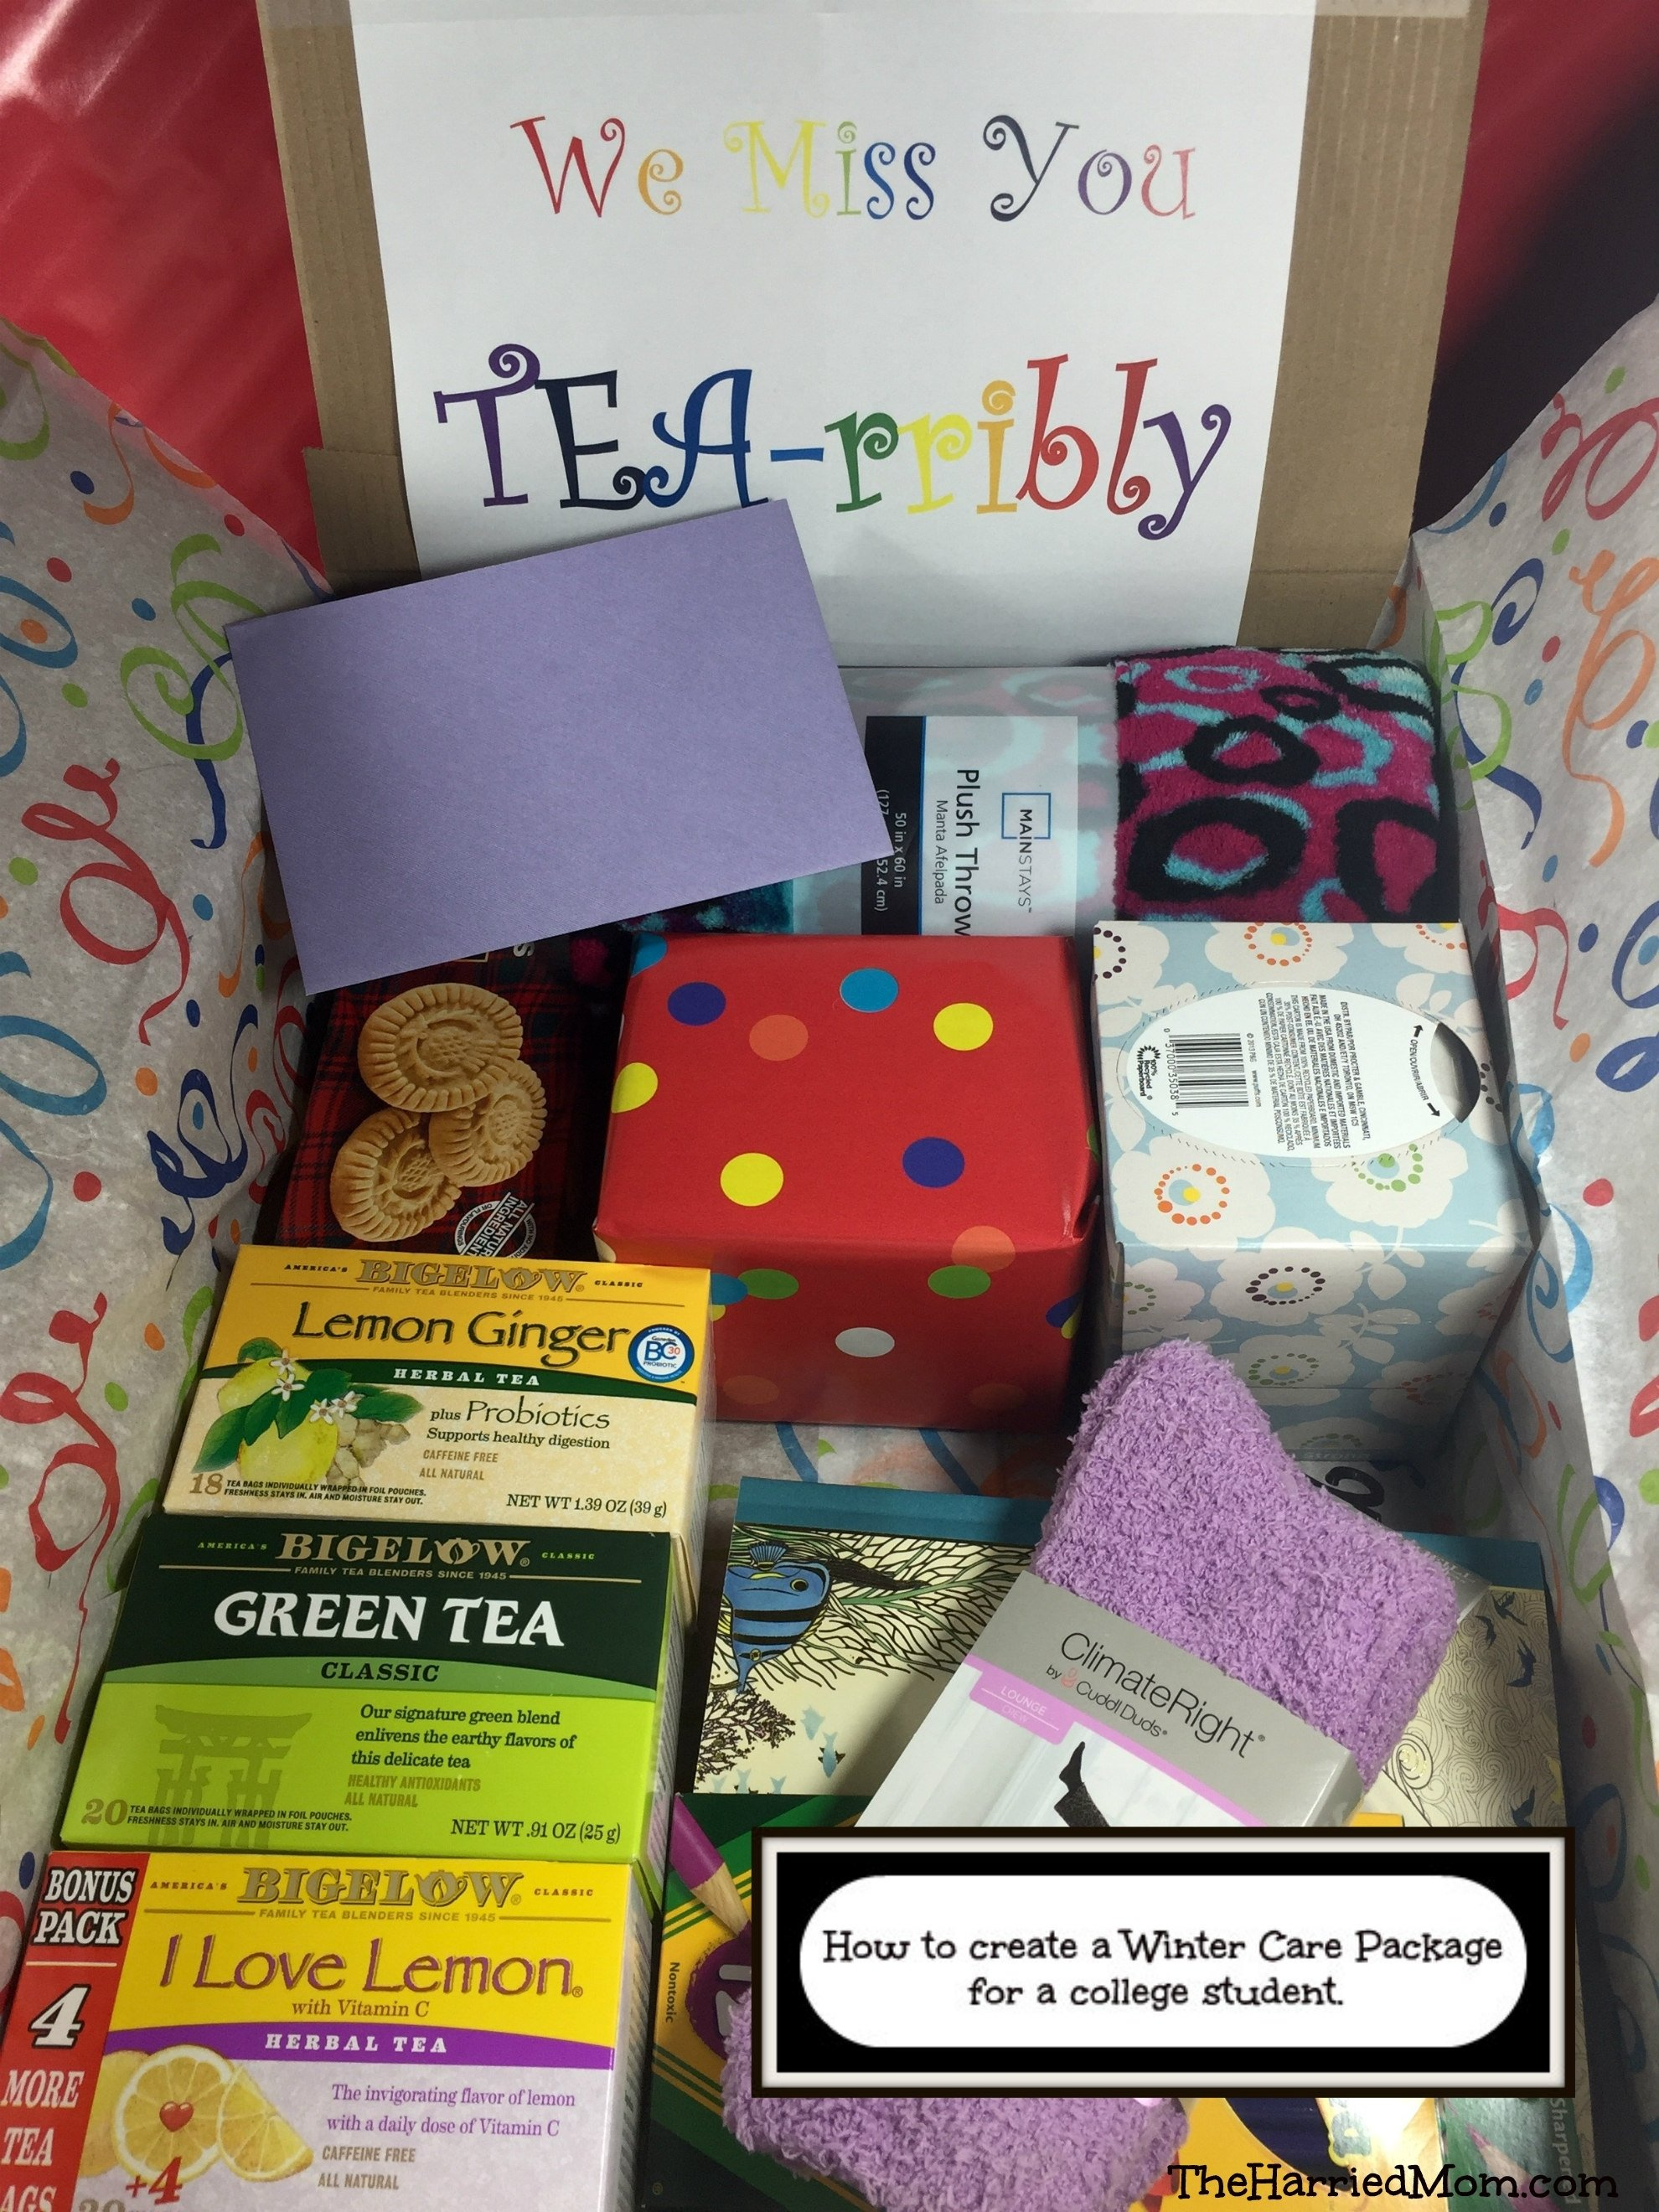 10 Fashionable Care Package Ideas For College Students how to create a winter care package for a college student 4 2020